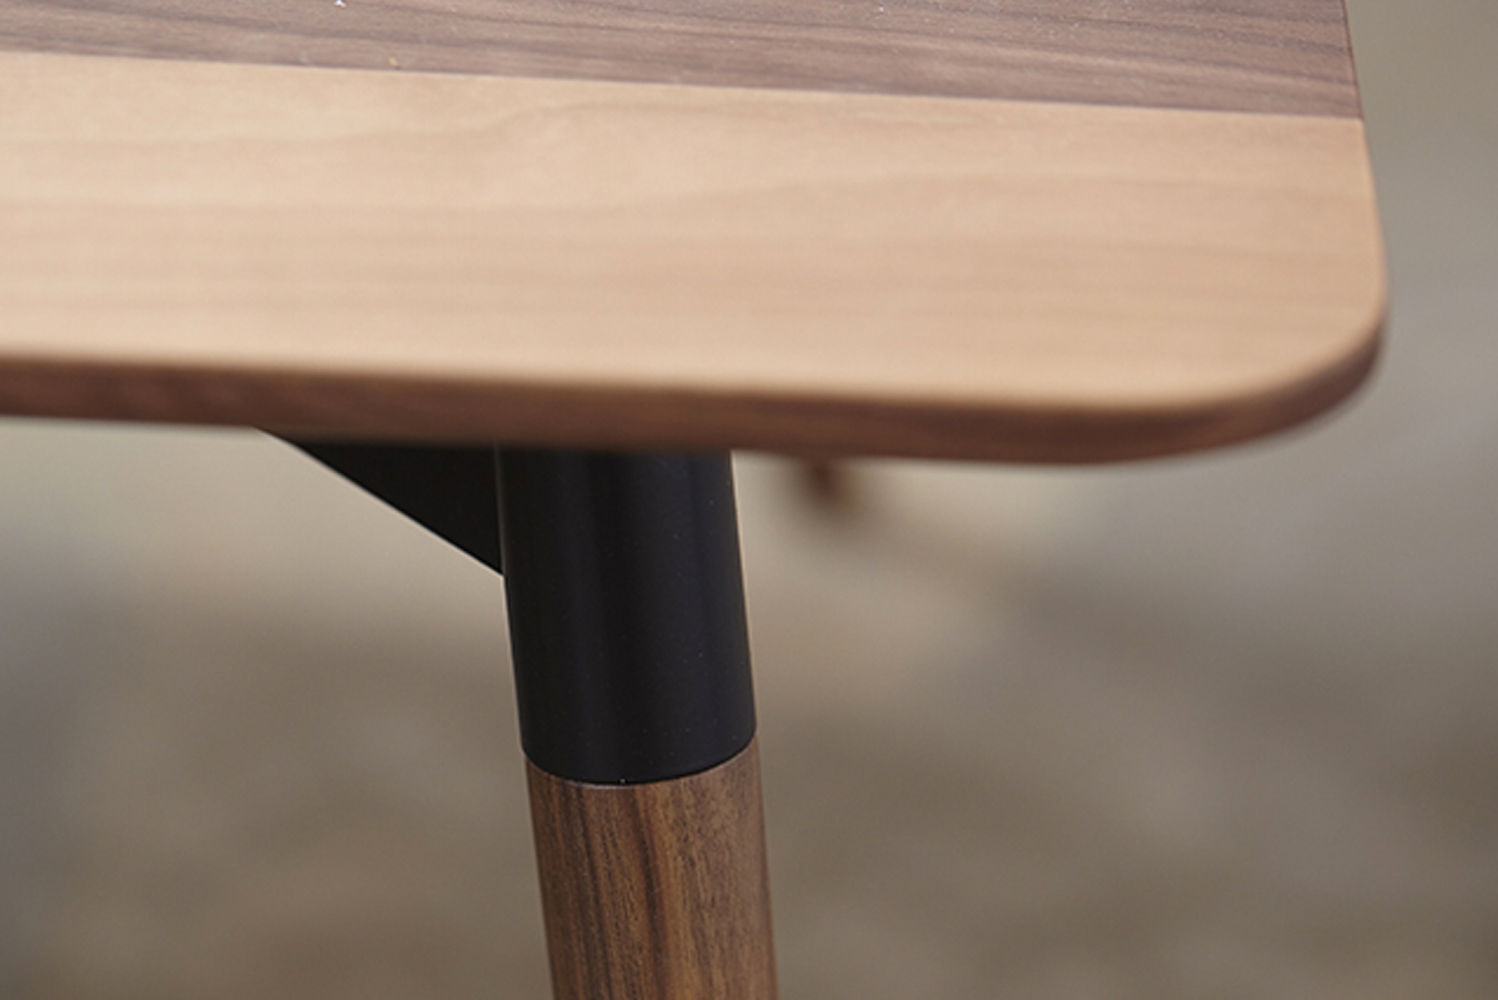 Various finishes are available, including three laminate options for the top, four for the legs, and 10 powder-coat finishes for the connecting bracket.